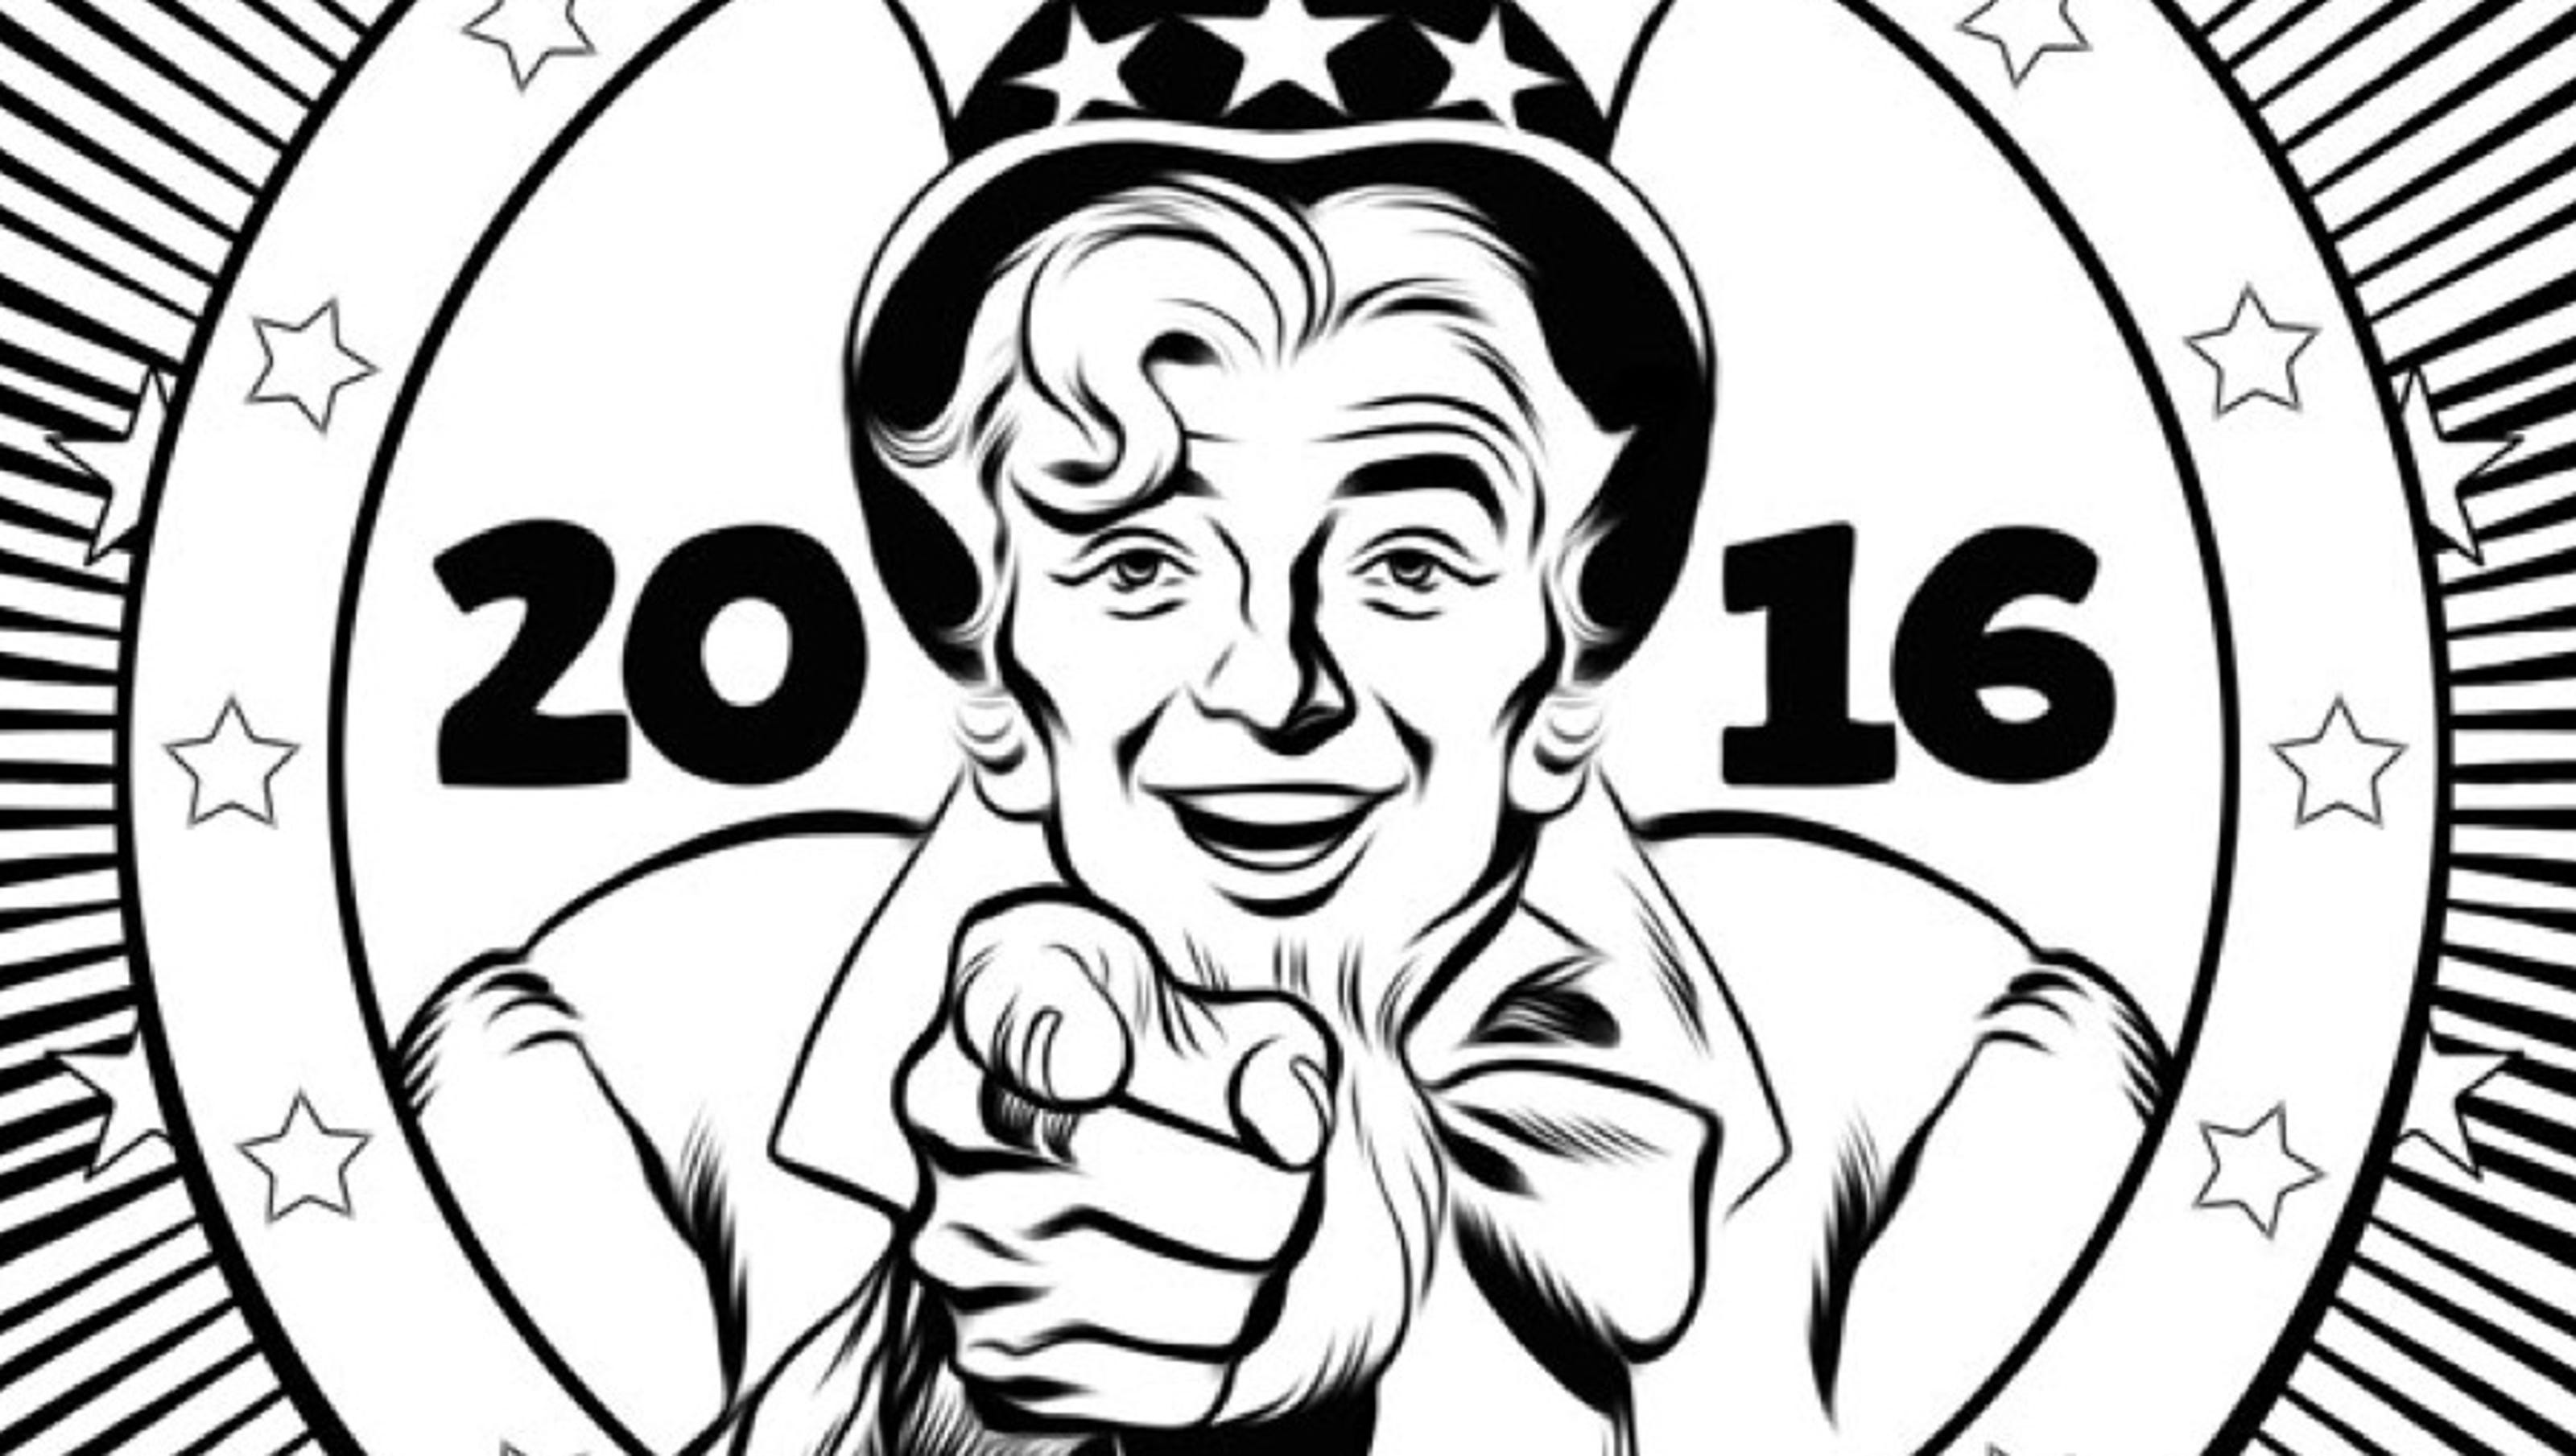 Politics stressing you out? Our 2016 coloring book is here